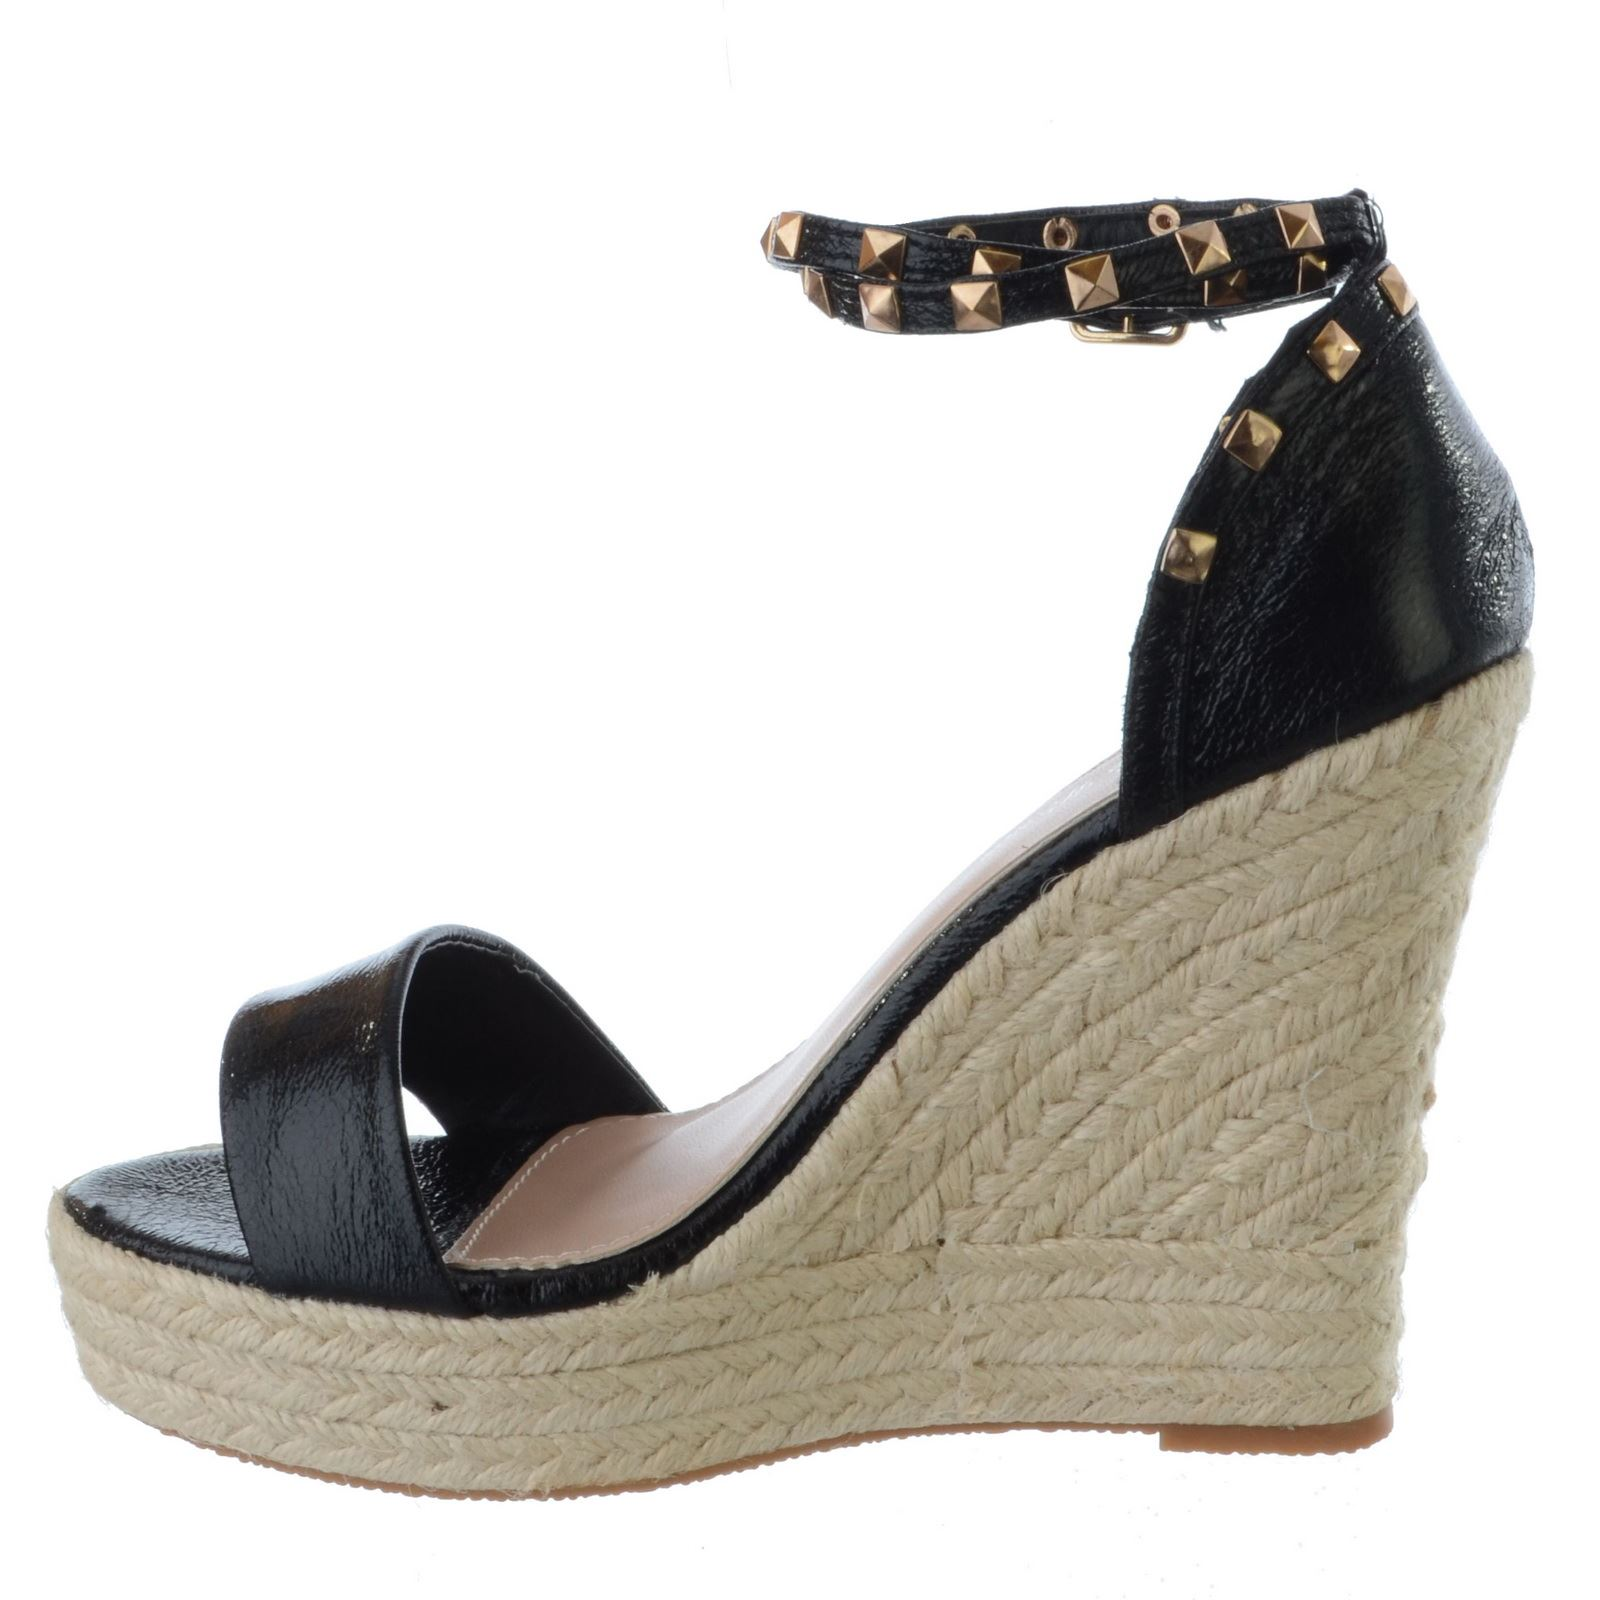 LADIES WOMENS HIGH HEEL WEDGE ESPADRILLES STUDDED ANKLE STRAP ...